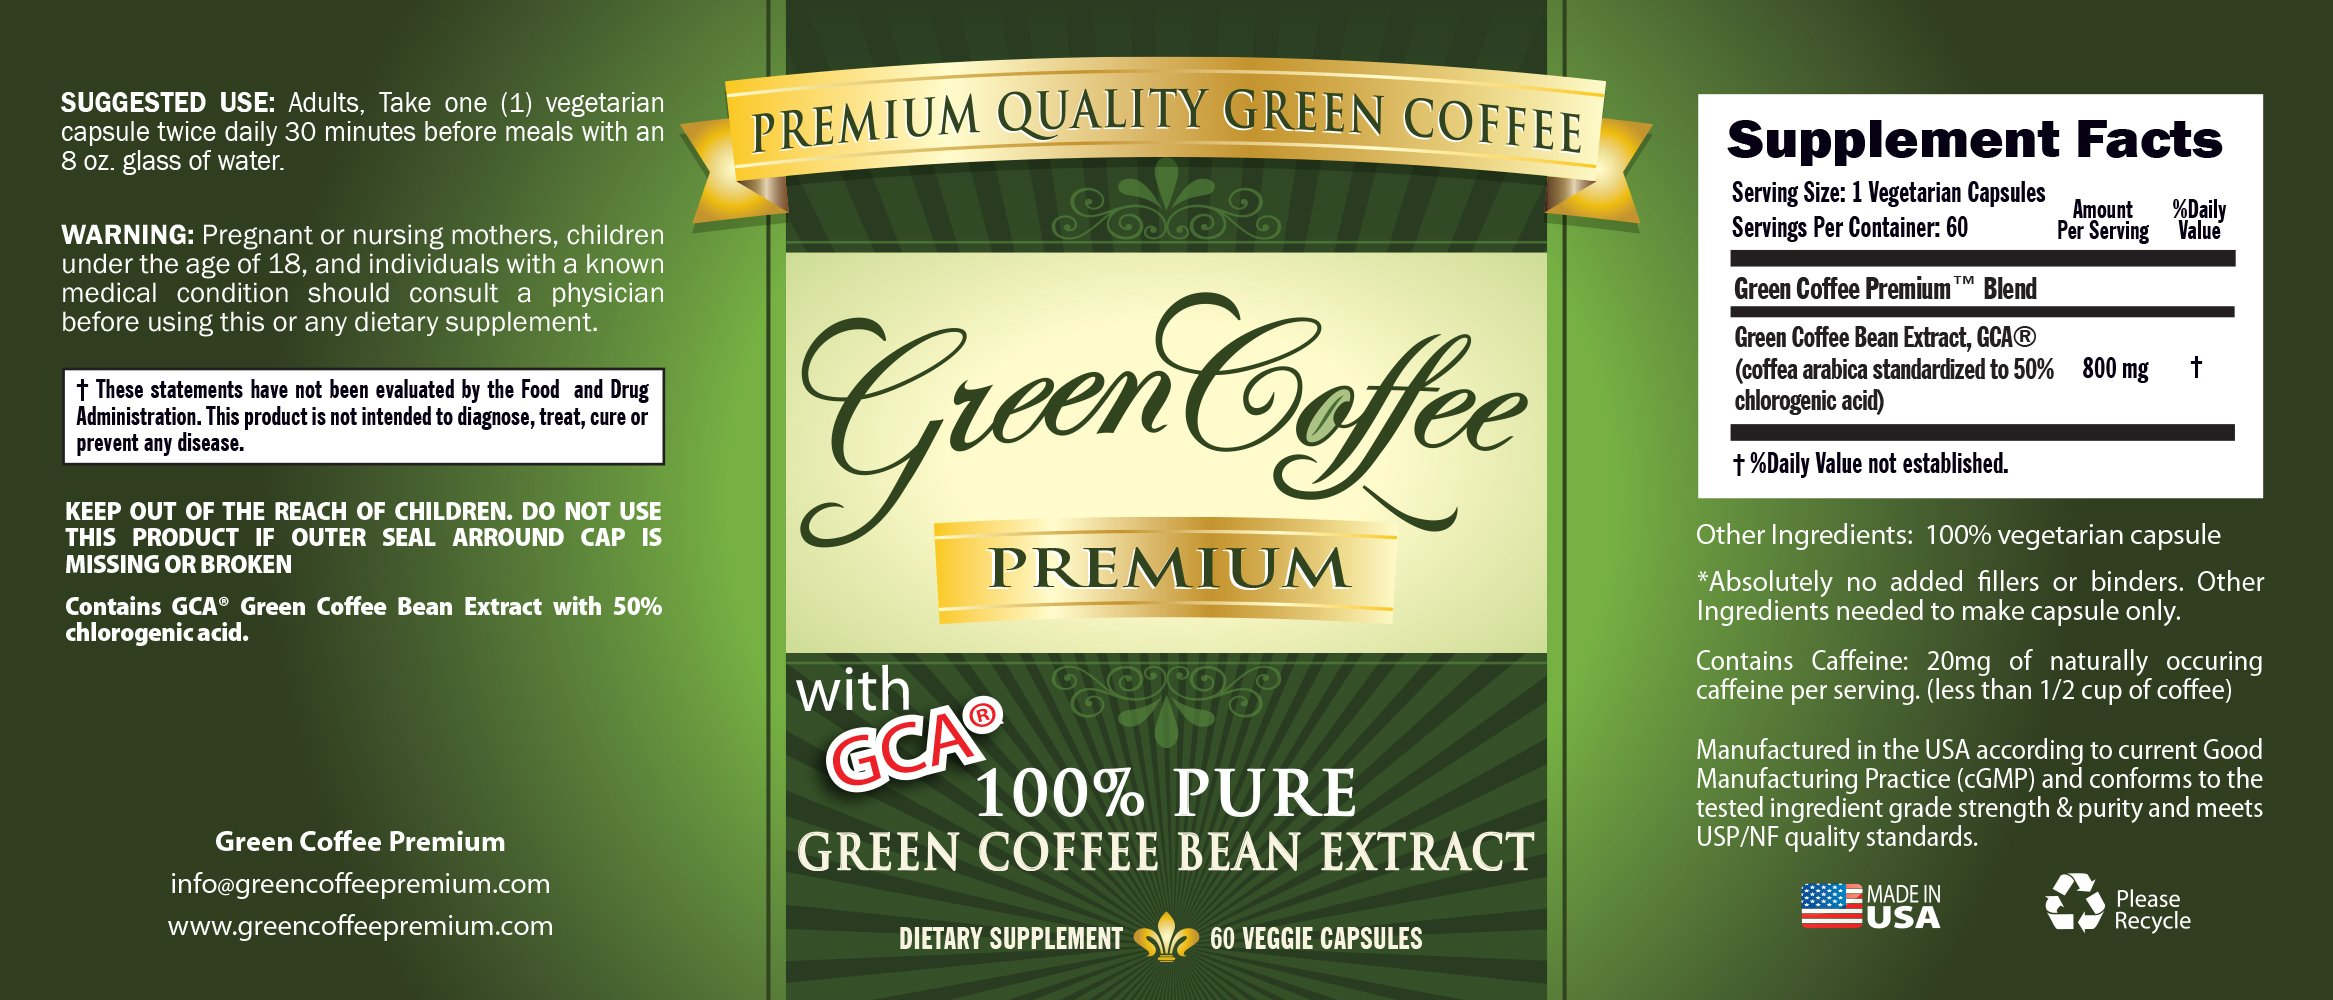 Green Coffee Bean Extract 100% PURE - 50% Chlorogenic Acid - 60 Capsules - Quick Fat Burner by Green Coffee Premium (Image #3)